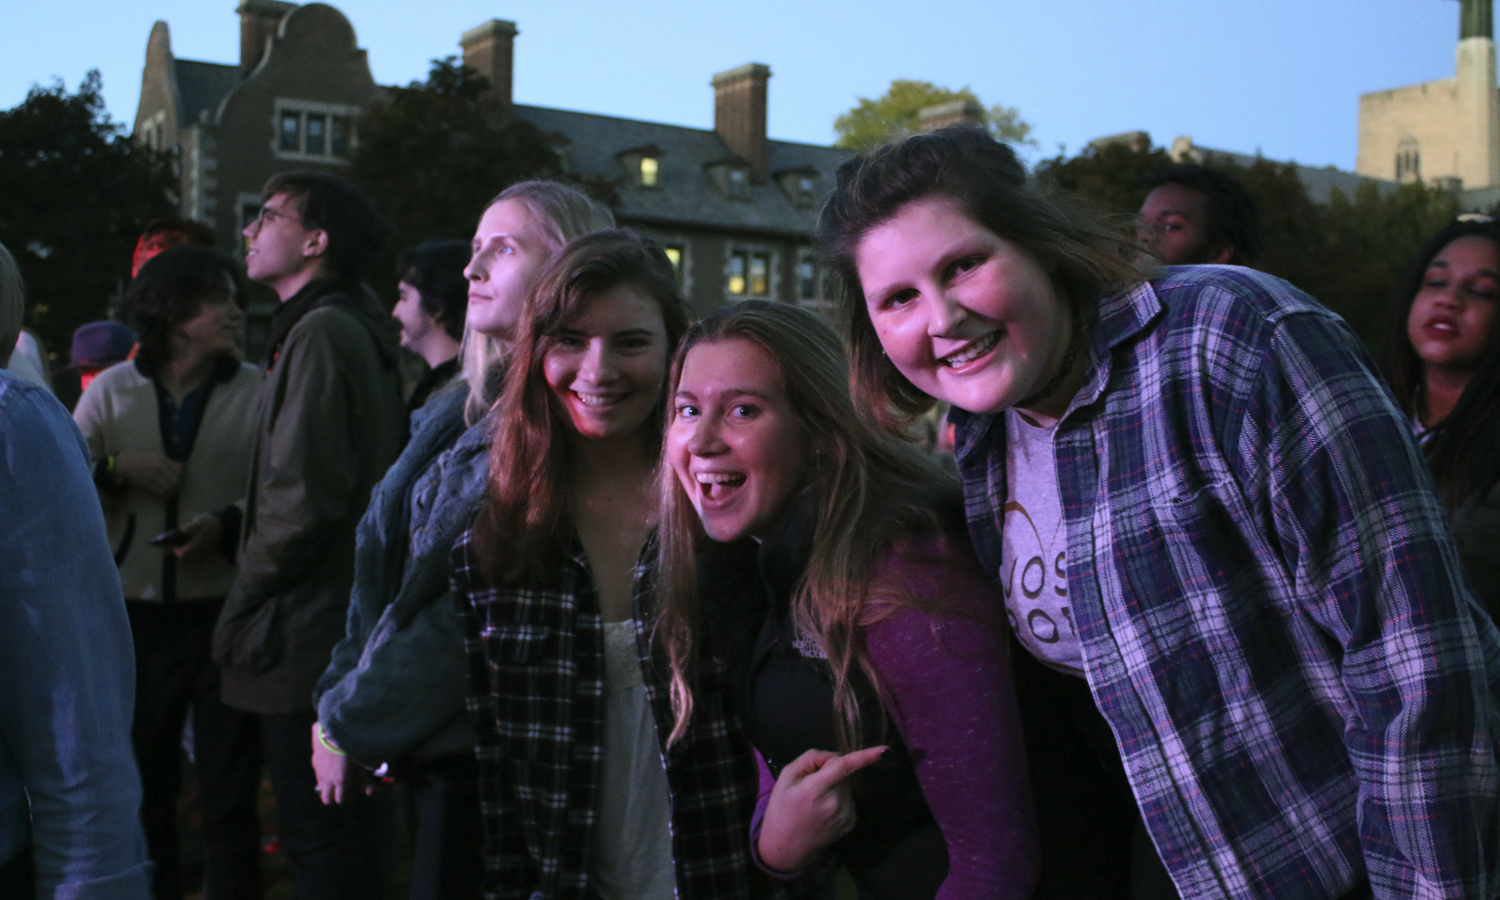 Ella Bourisseau 19', Allie Haversat 19' and Lili Dash 19' enjoy the concert on the Quad